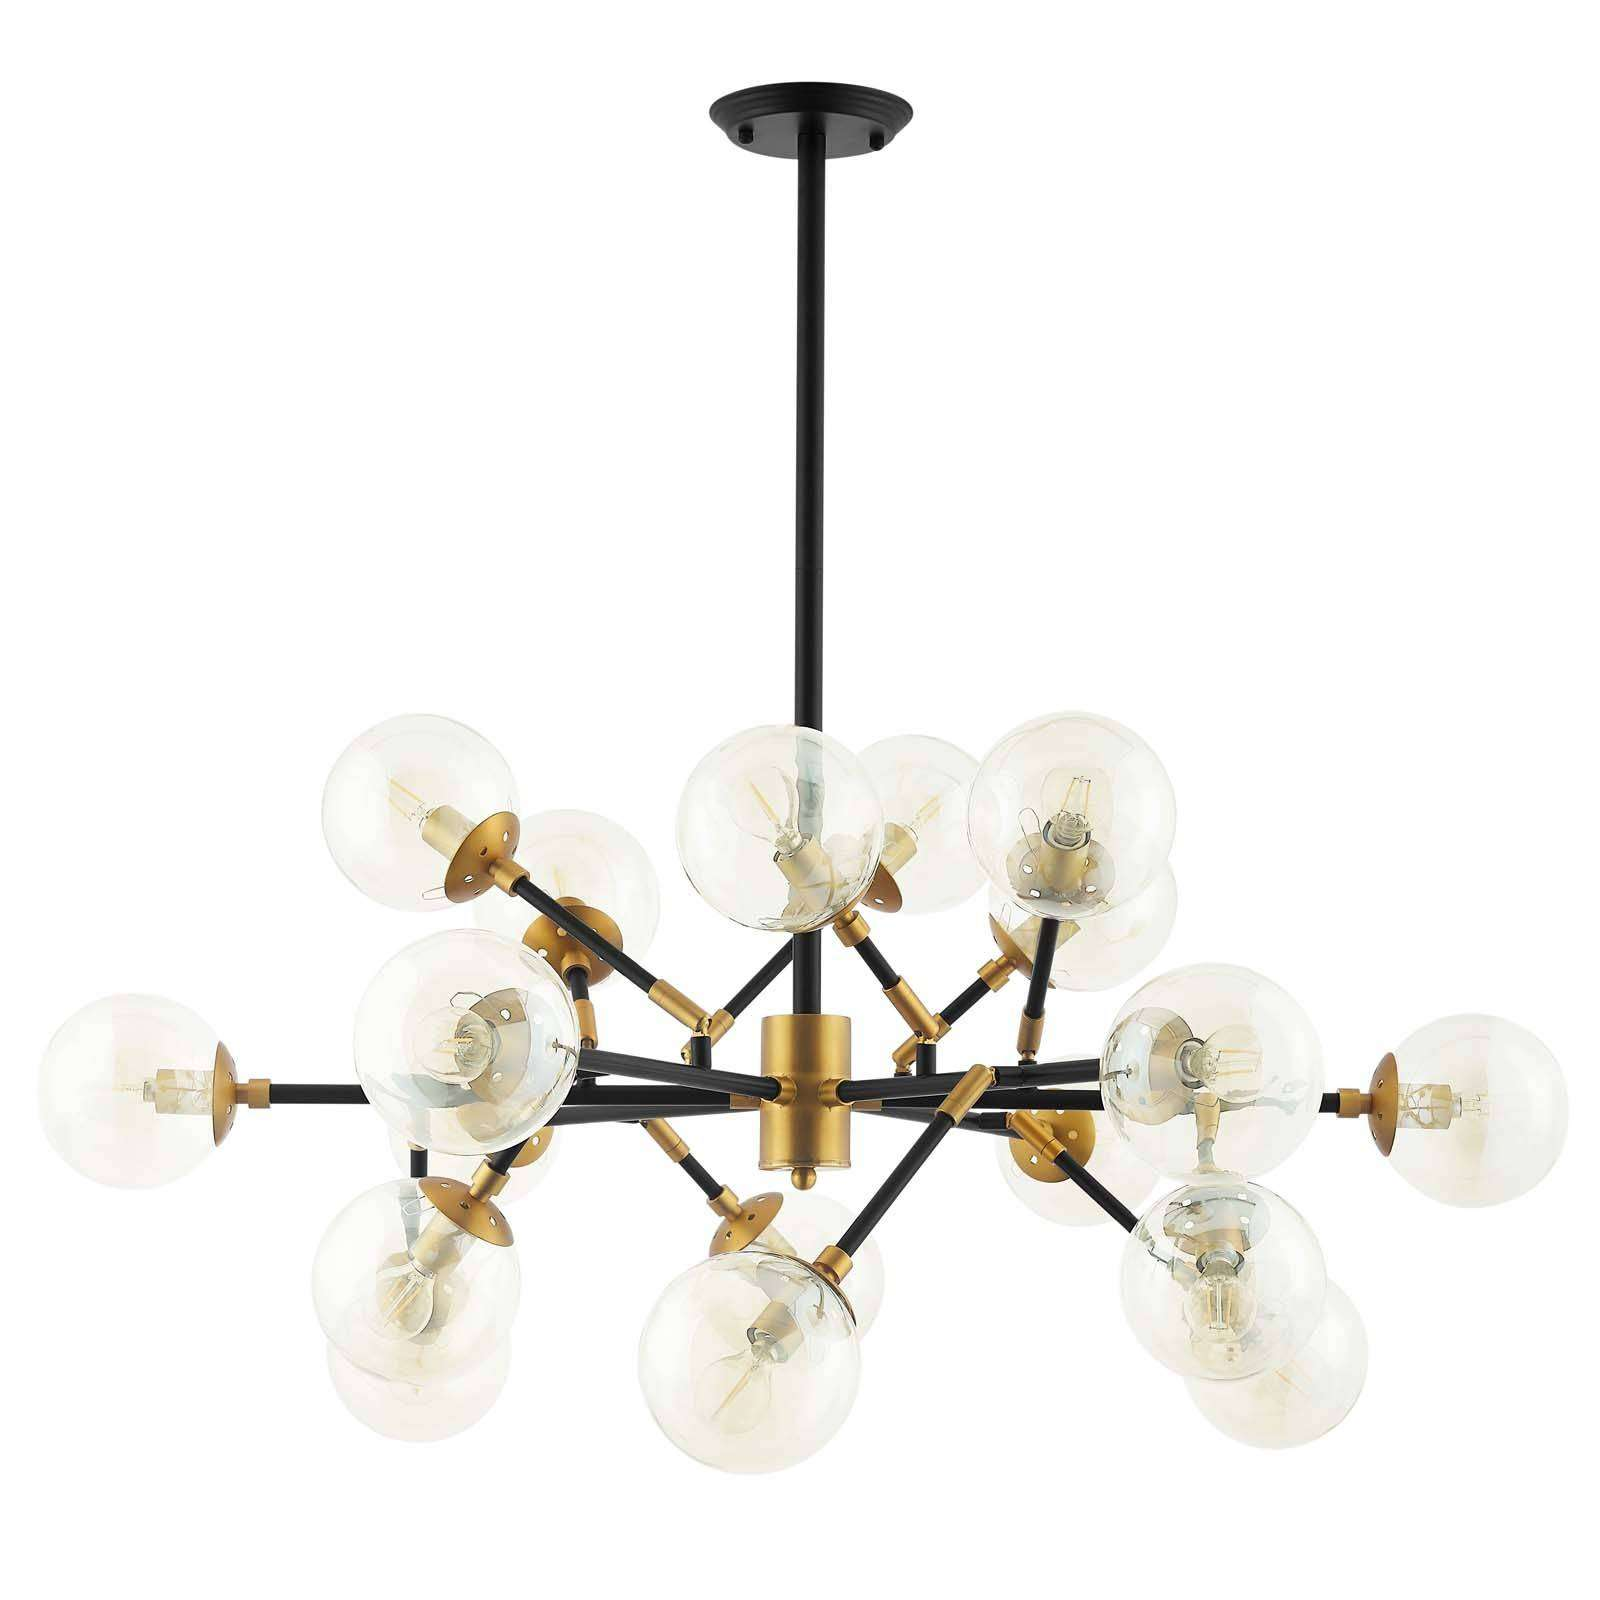 Modterior Lighting Chandeliers Sparkle Amber Glass And Antique Brass 18 Light Mid Century Chandelier